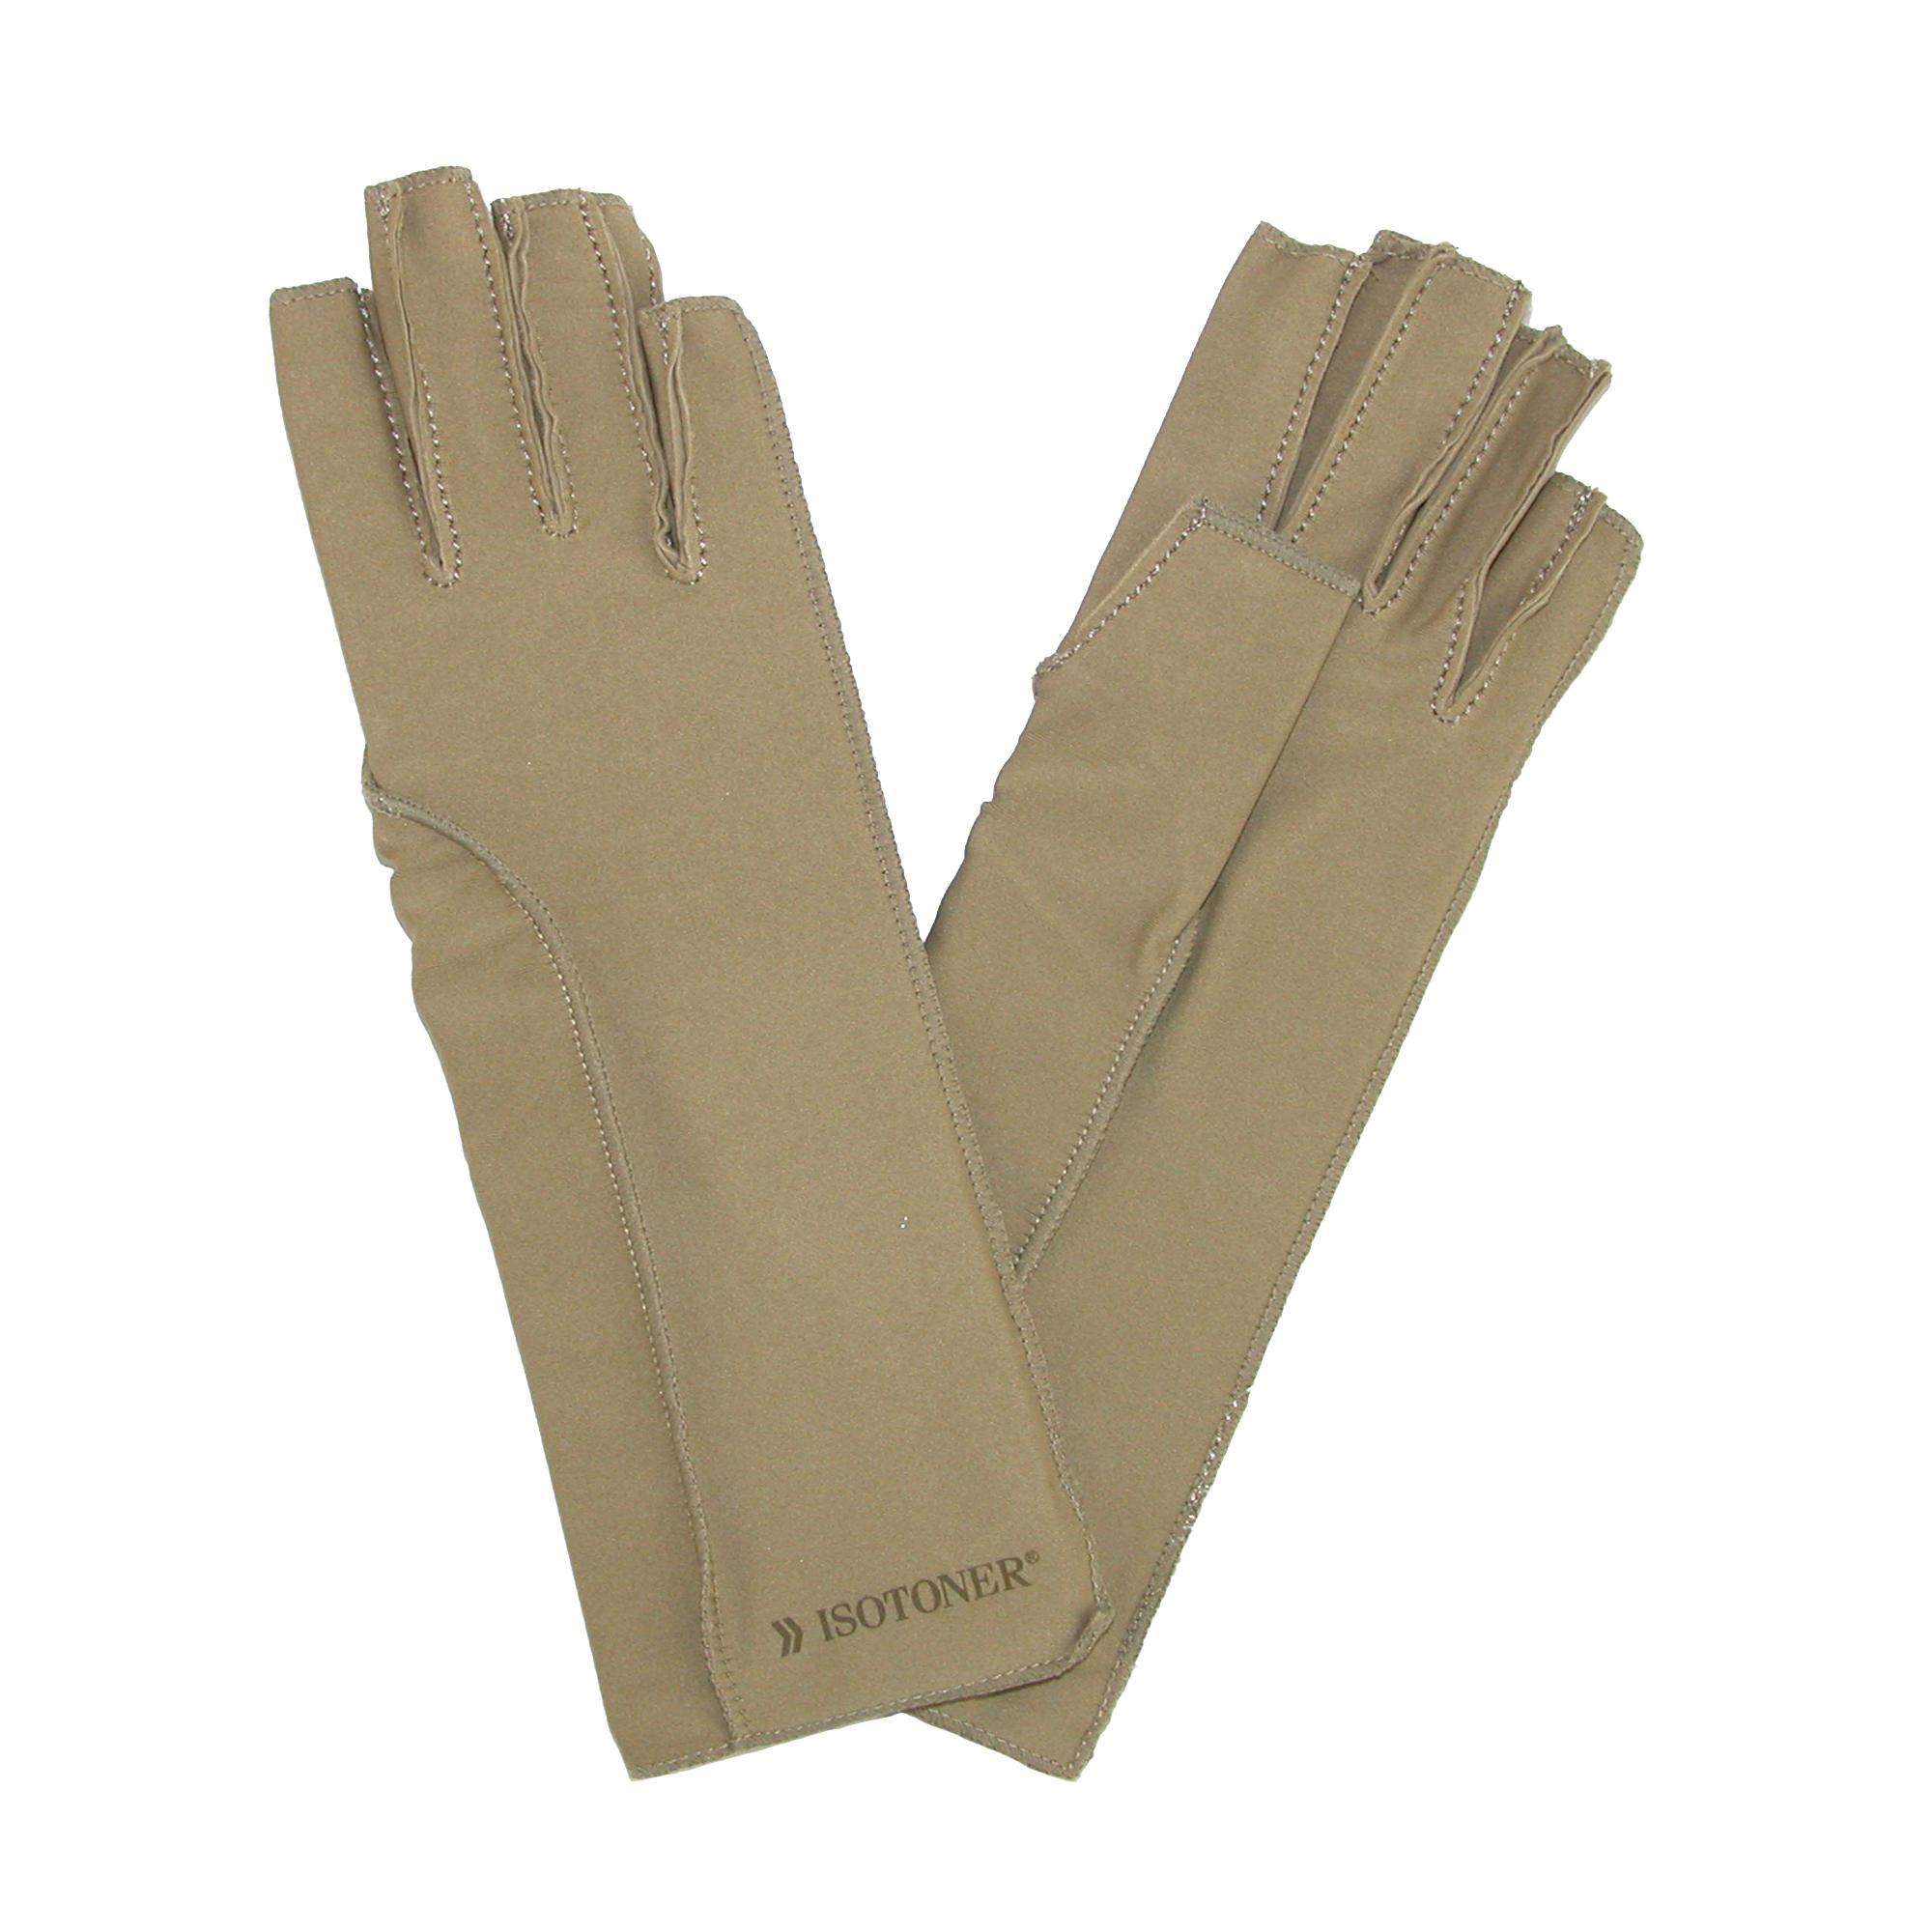 Isotoner_Therapeutic_Compression_Fingerless_Gloves_-_Camel_Tan_Medium